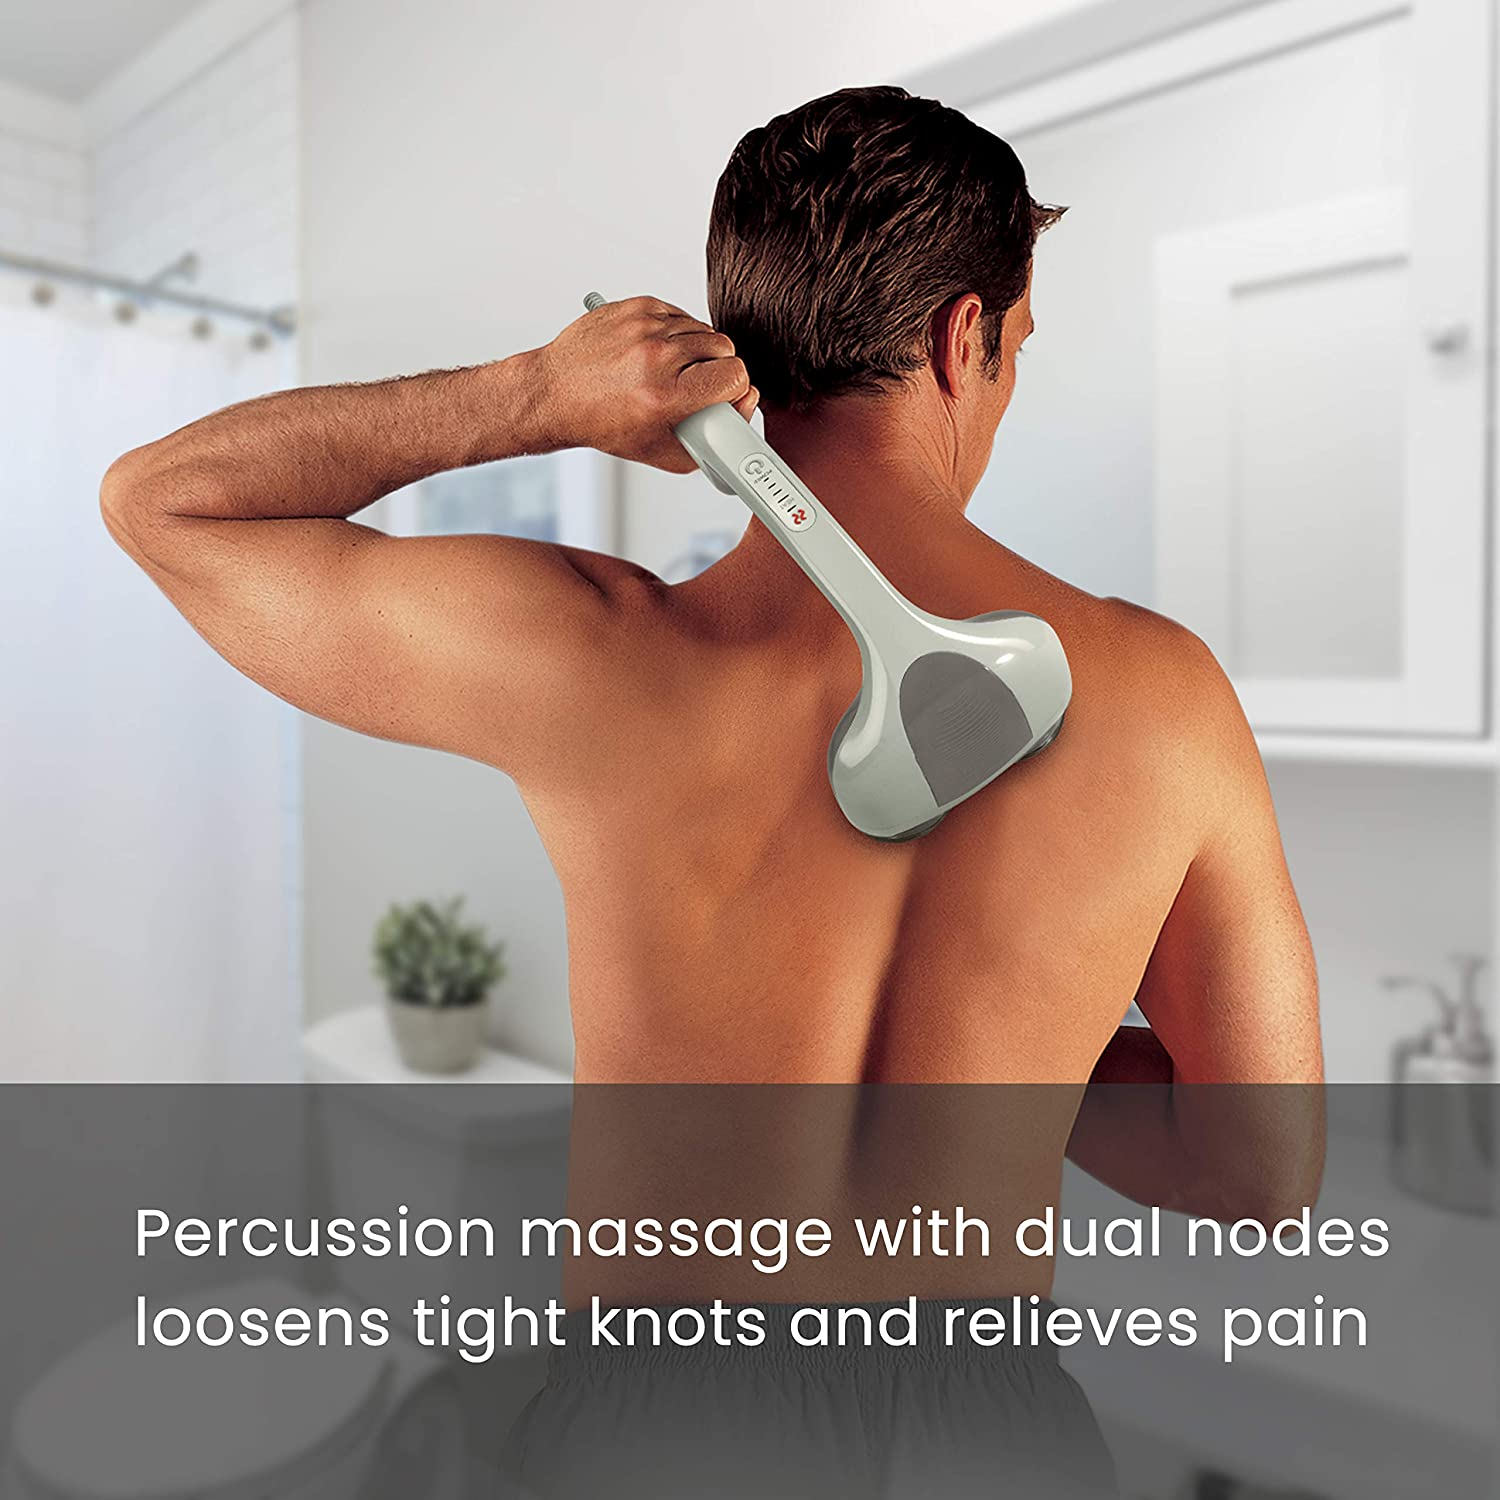 HoMedics percussion action plus massager